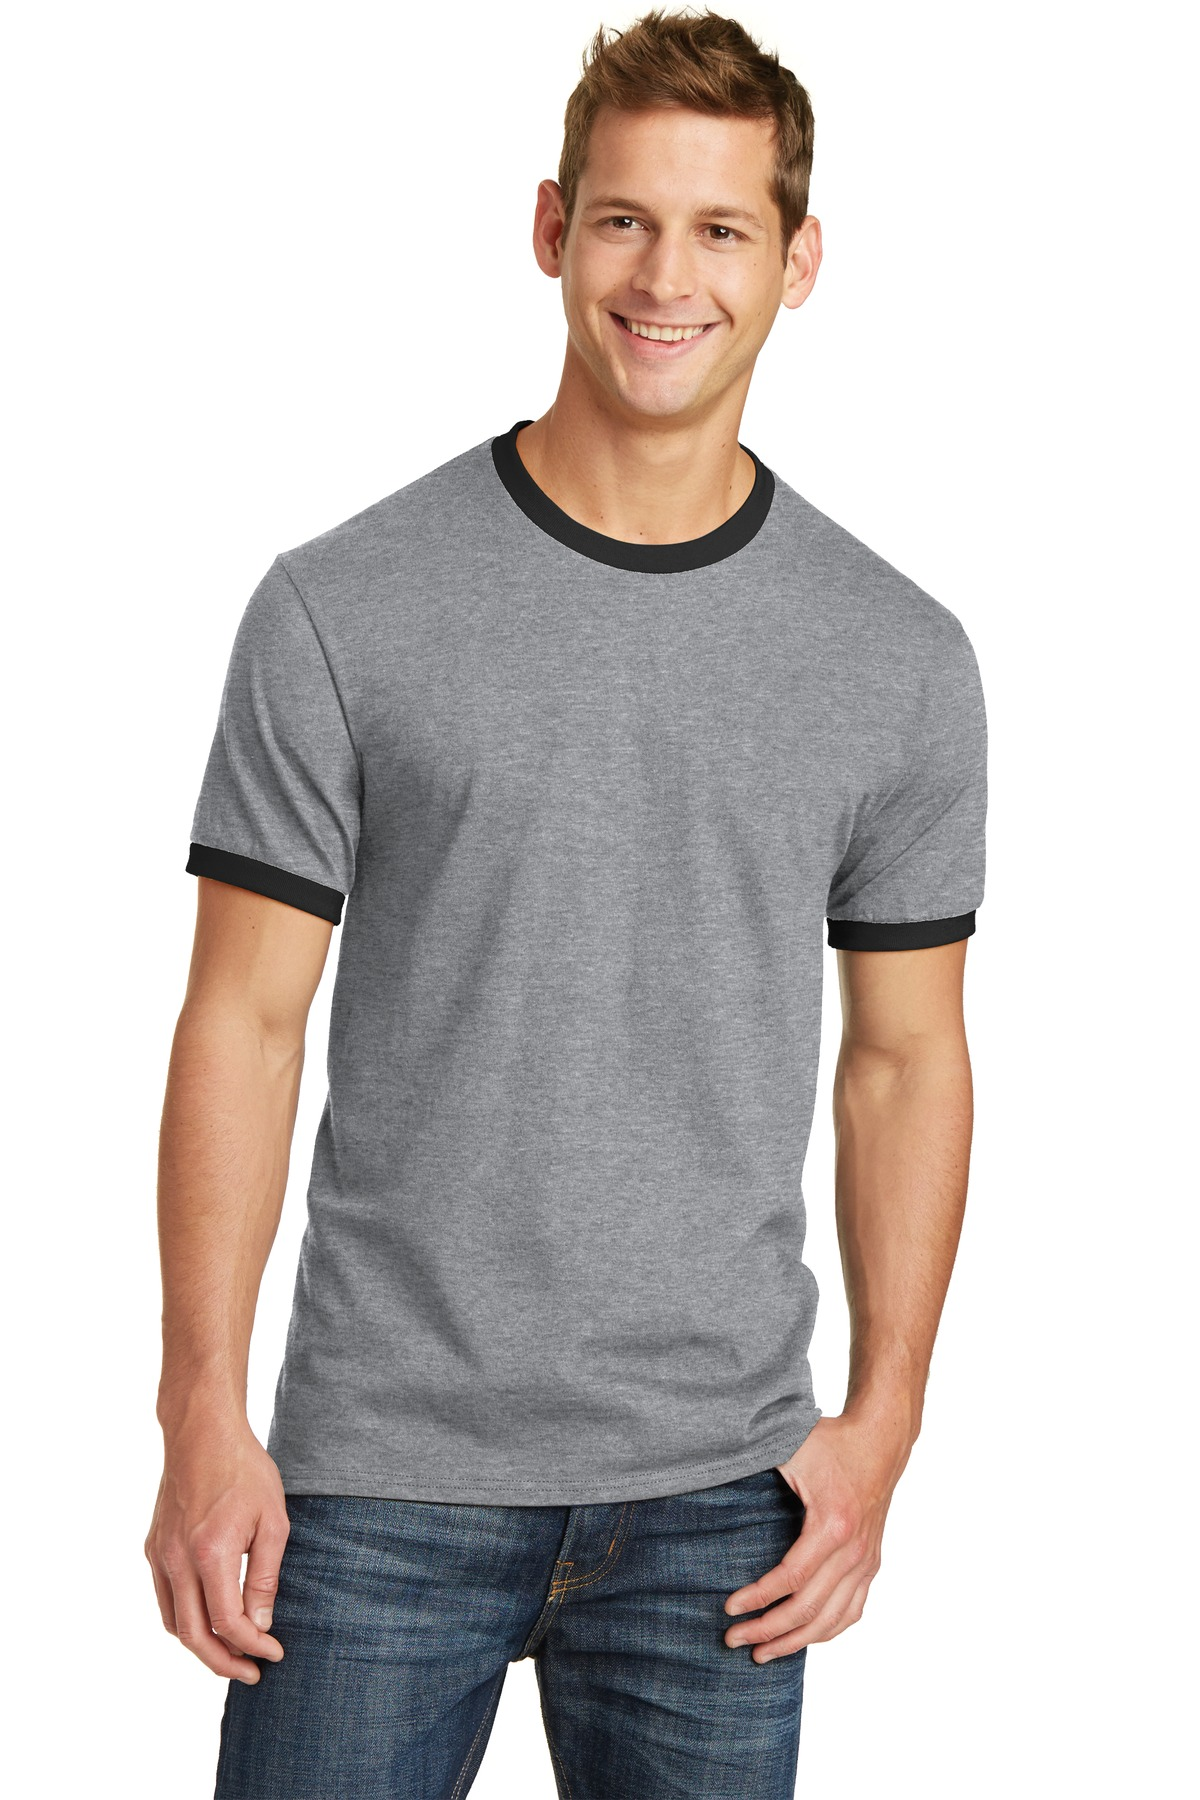 Port & Company  PC54R - 5.4-Oz 100% Cotton Ringer Tee